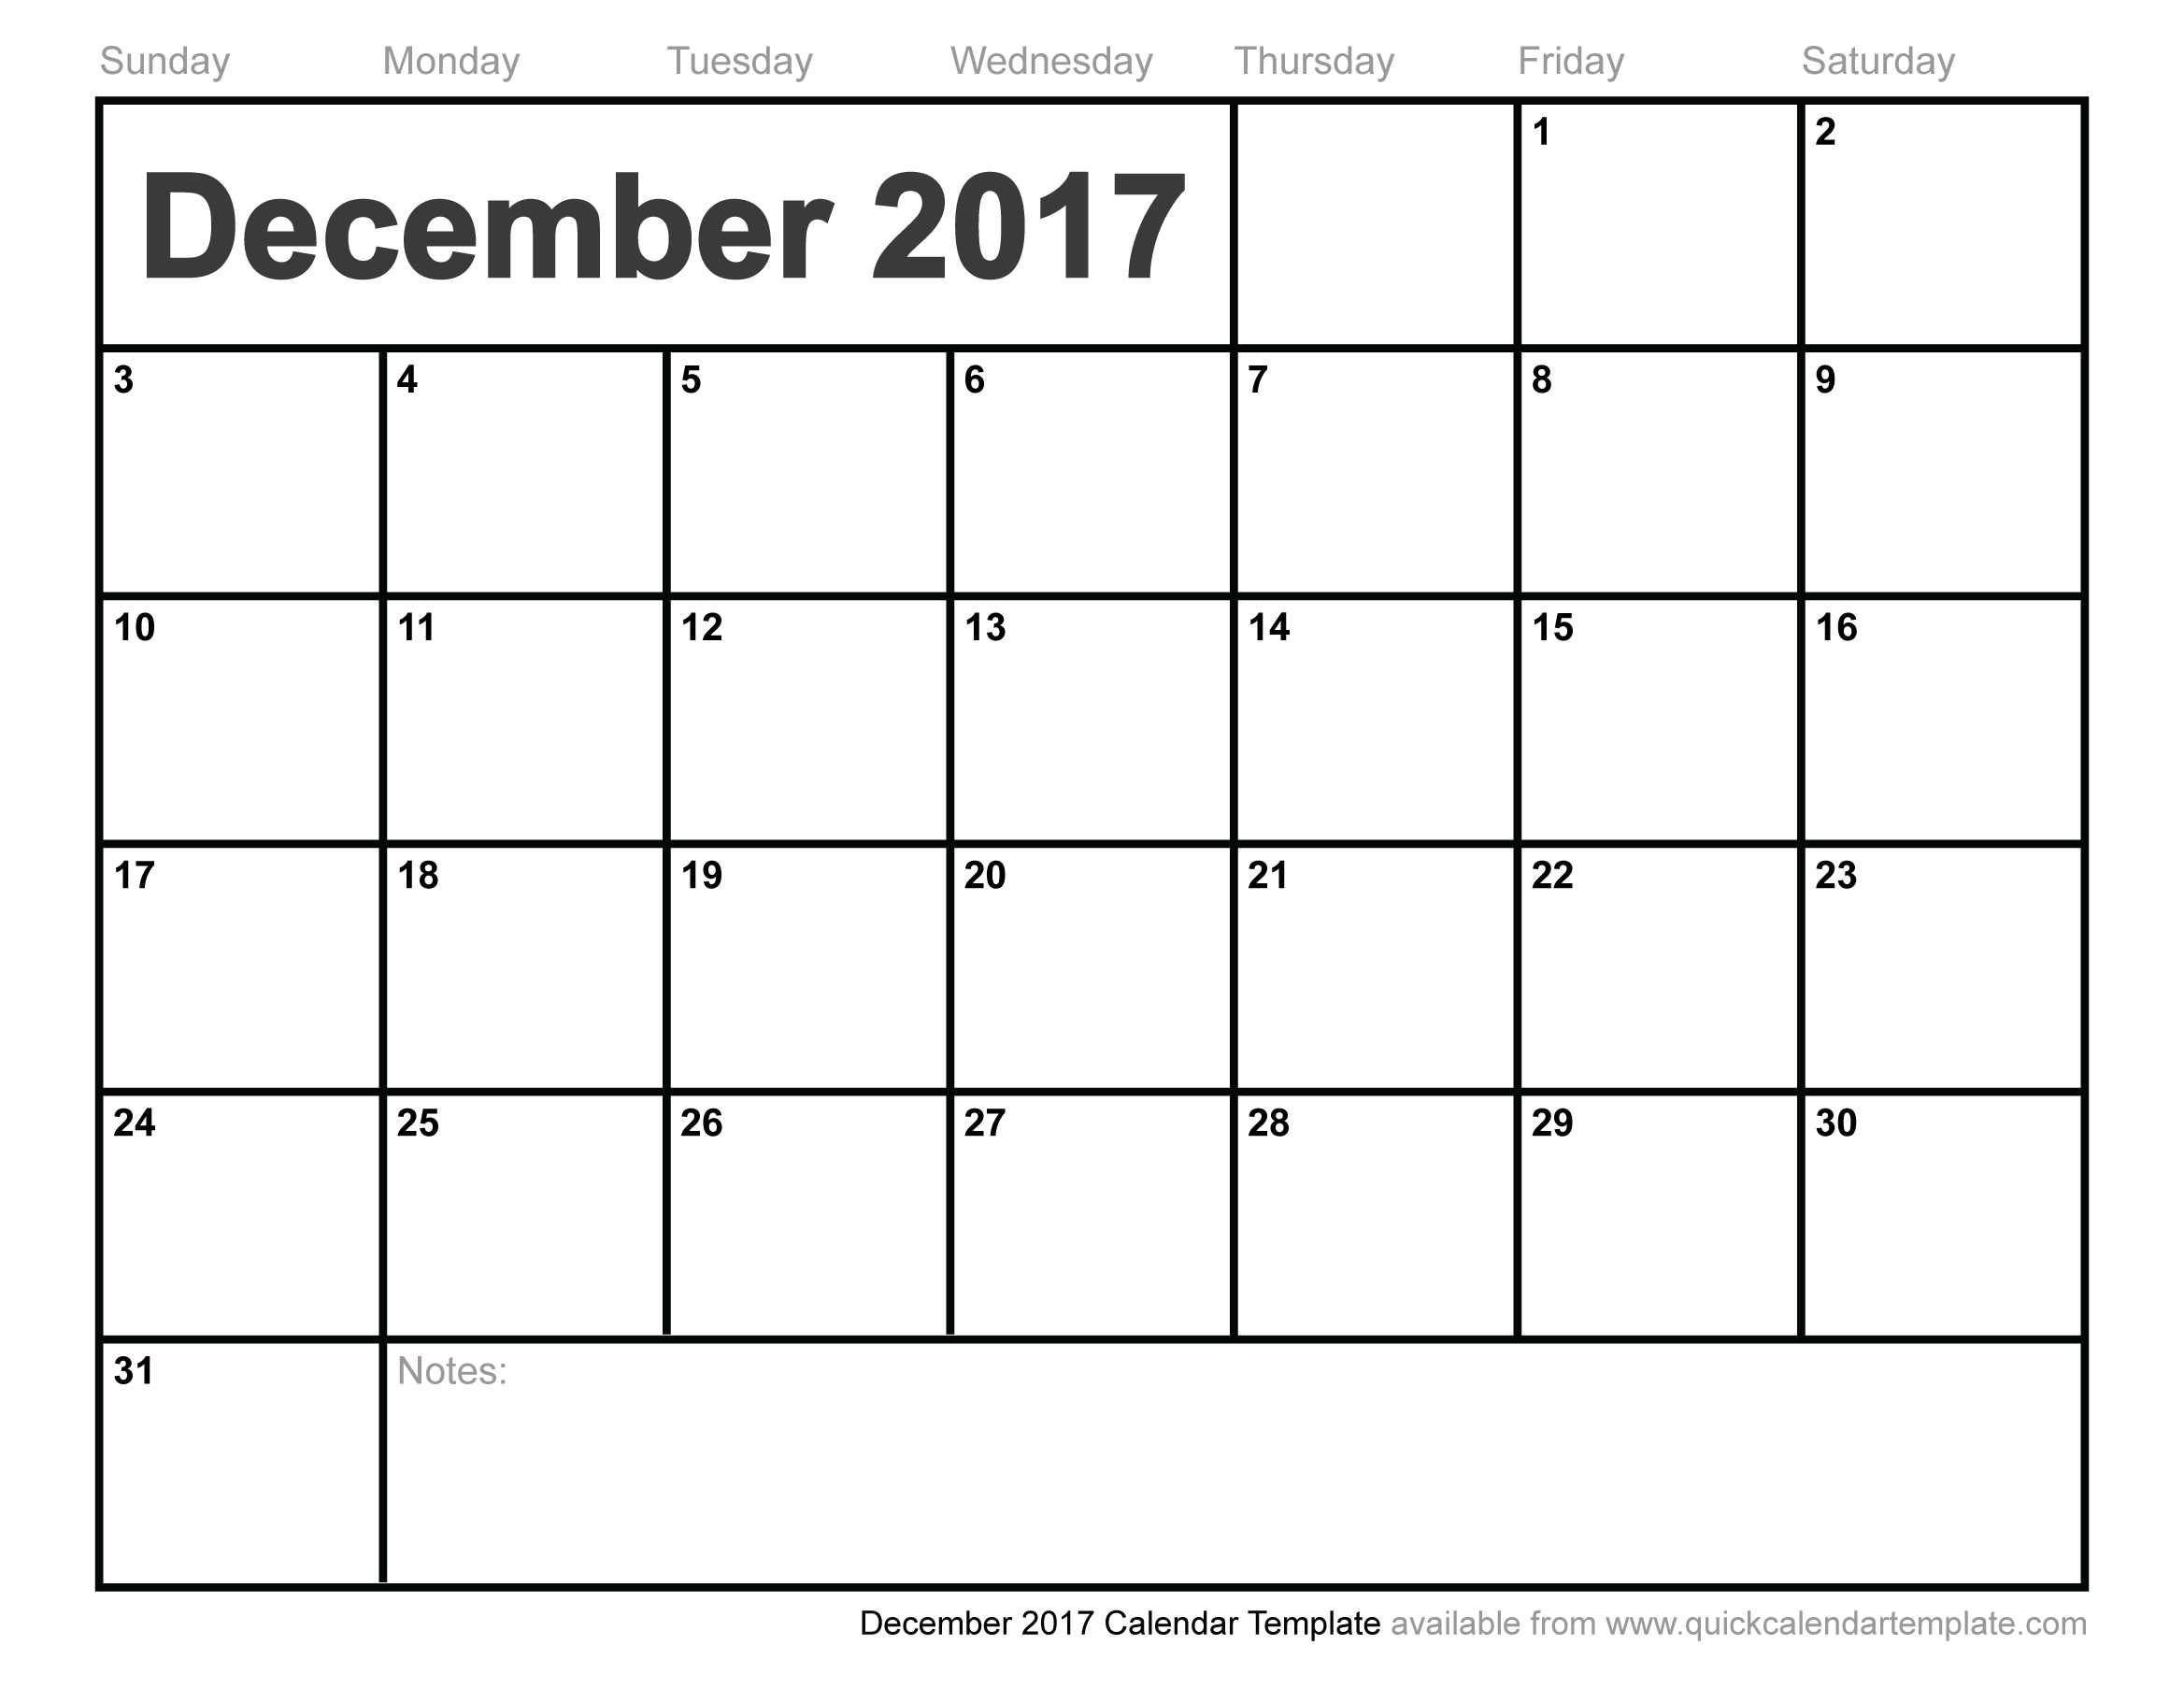 December 2017 Calendar Printable | monthly calendar printable